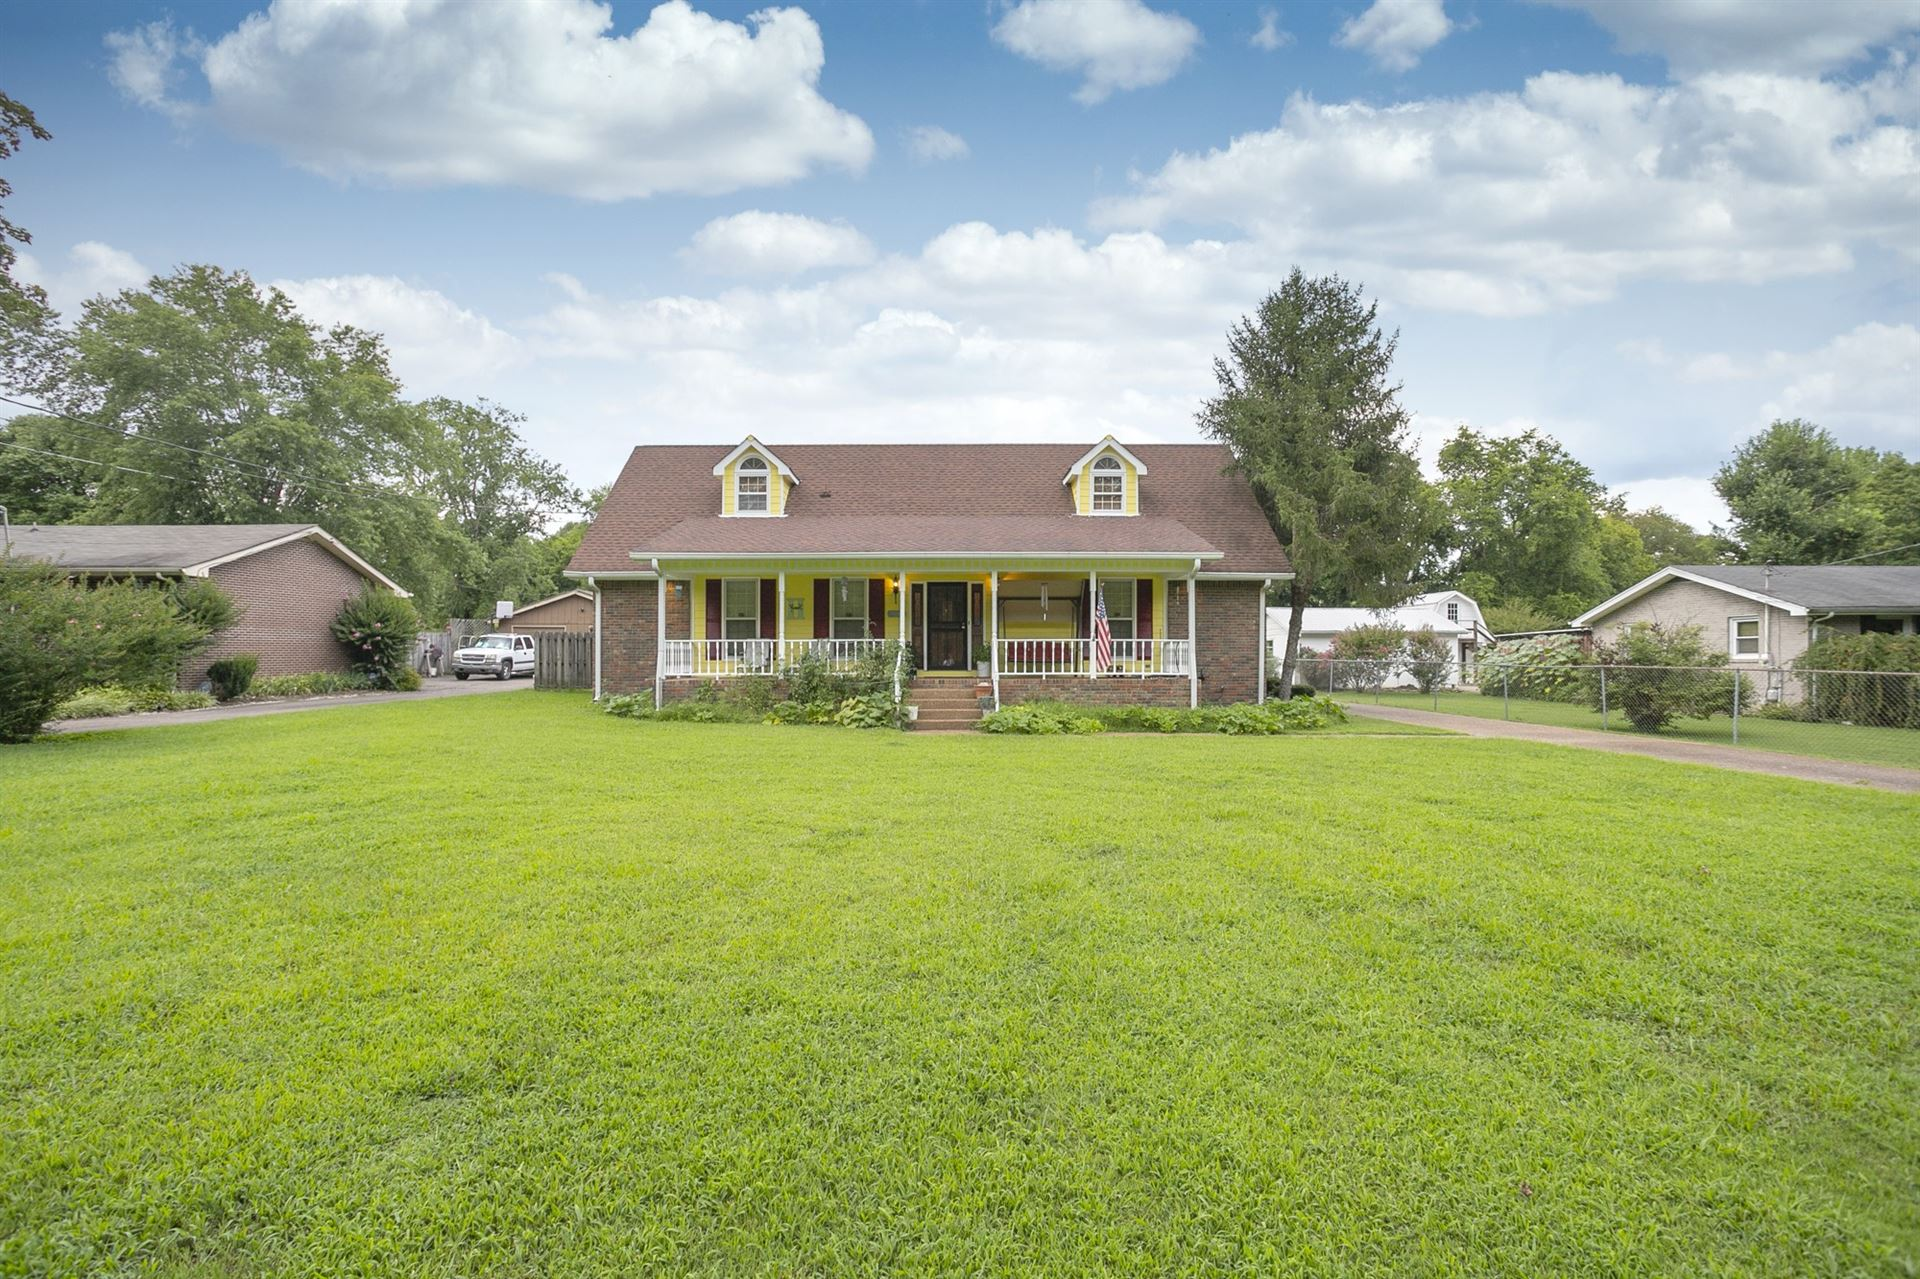 3044 Patton Branch Rd, Goodlettsville, TN 37072 - MLS#: 2185654